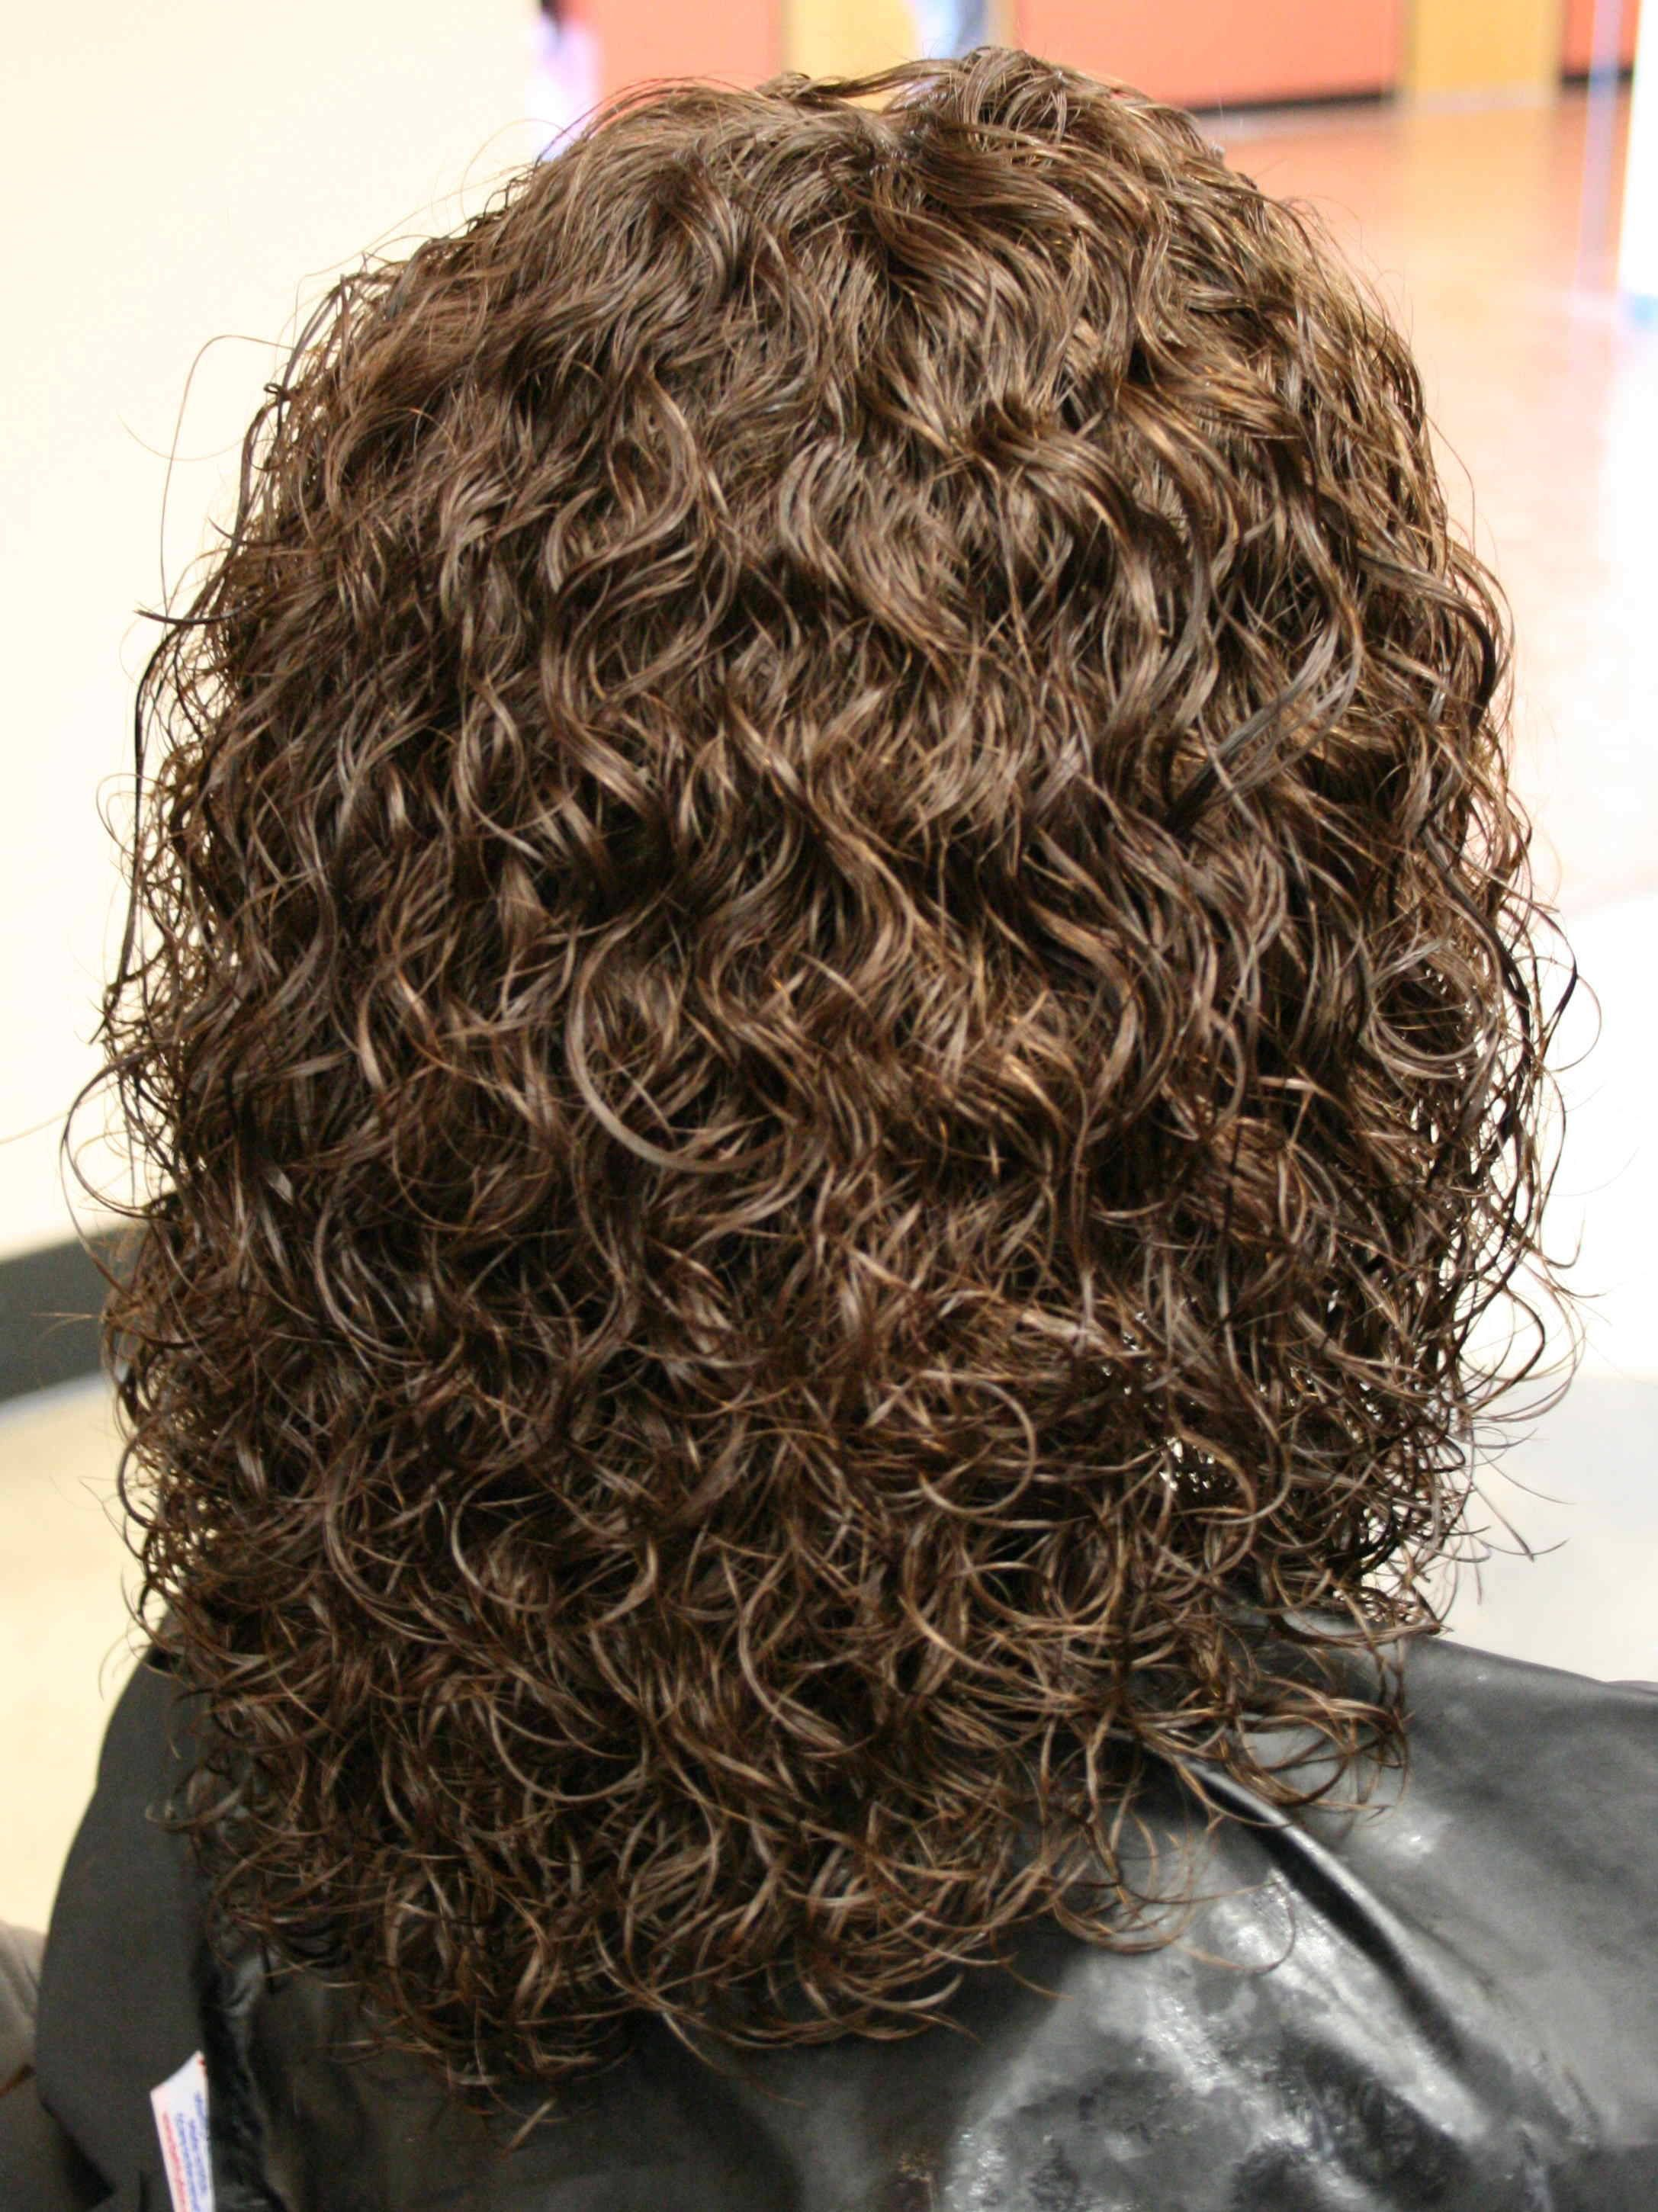 Hair Perm How To Perm Hair Perms For Long Hair Short Permed Hairstyles Medium Length Hair Styles Short Permed Hair